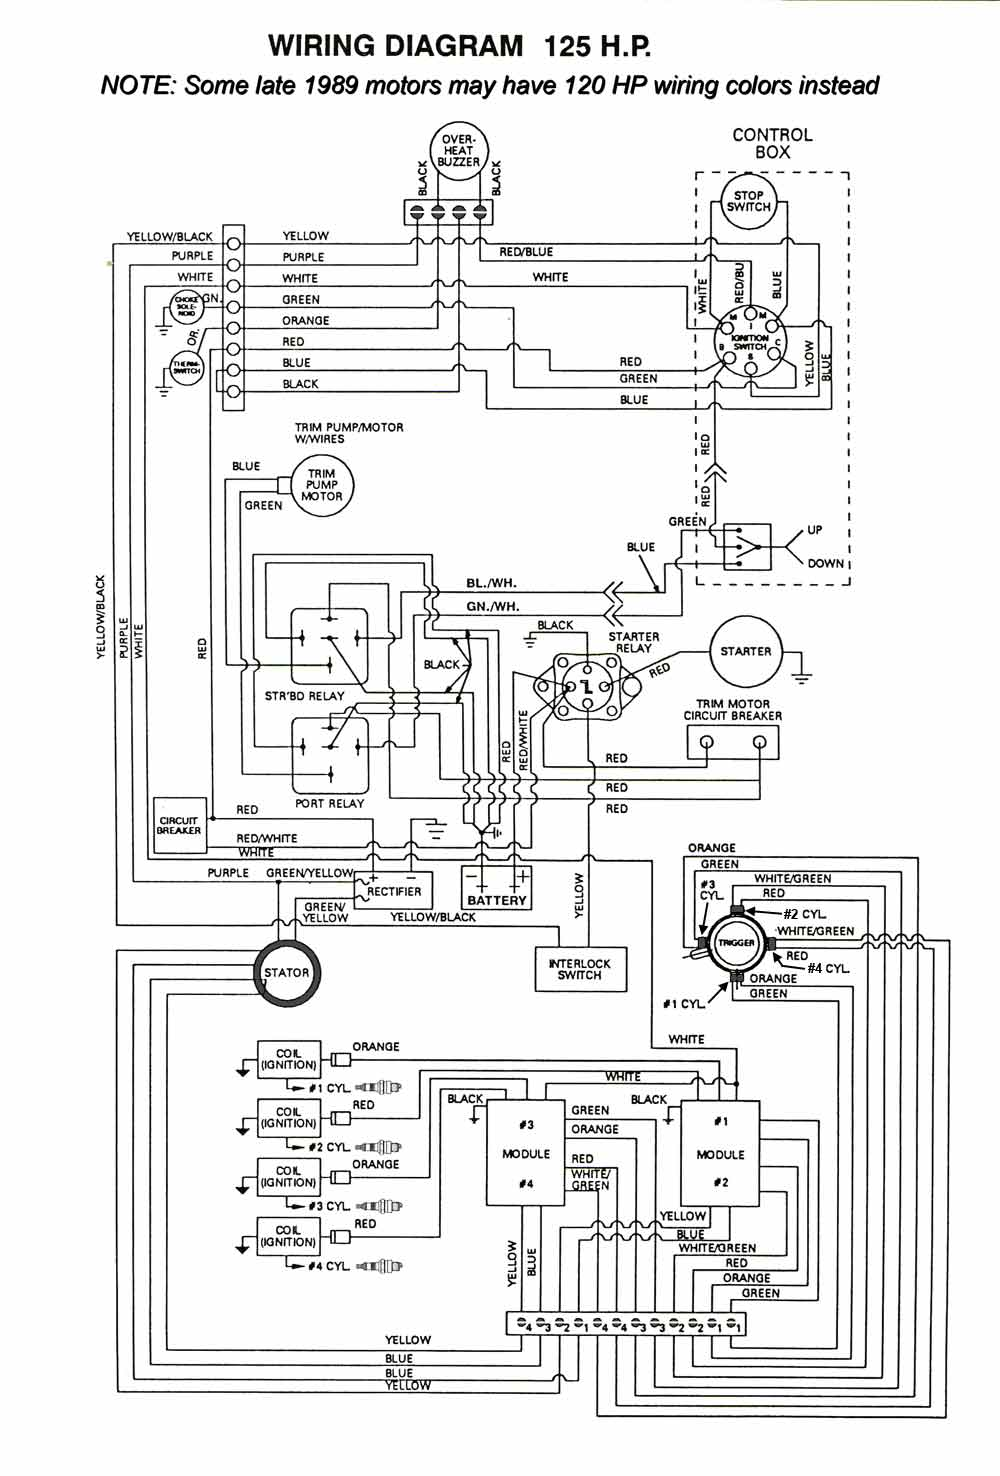 Chrysler Outboard Wiring Diagrams Mastertech Marine Hp Diagram Force 125 Thru 1989 Models